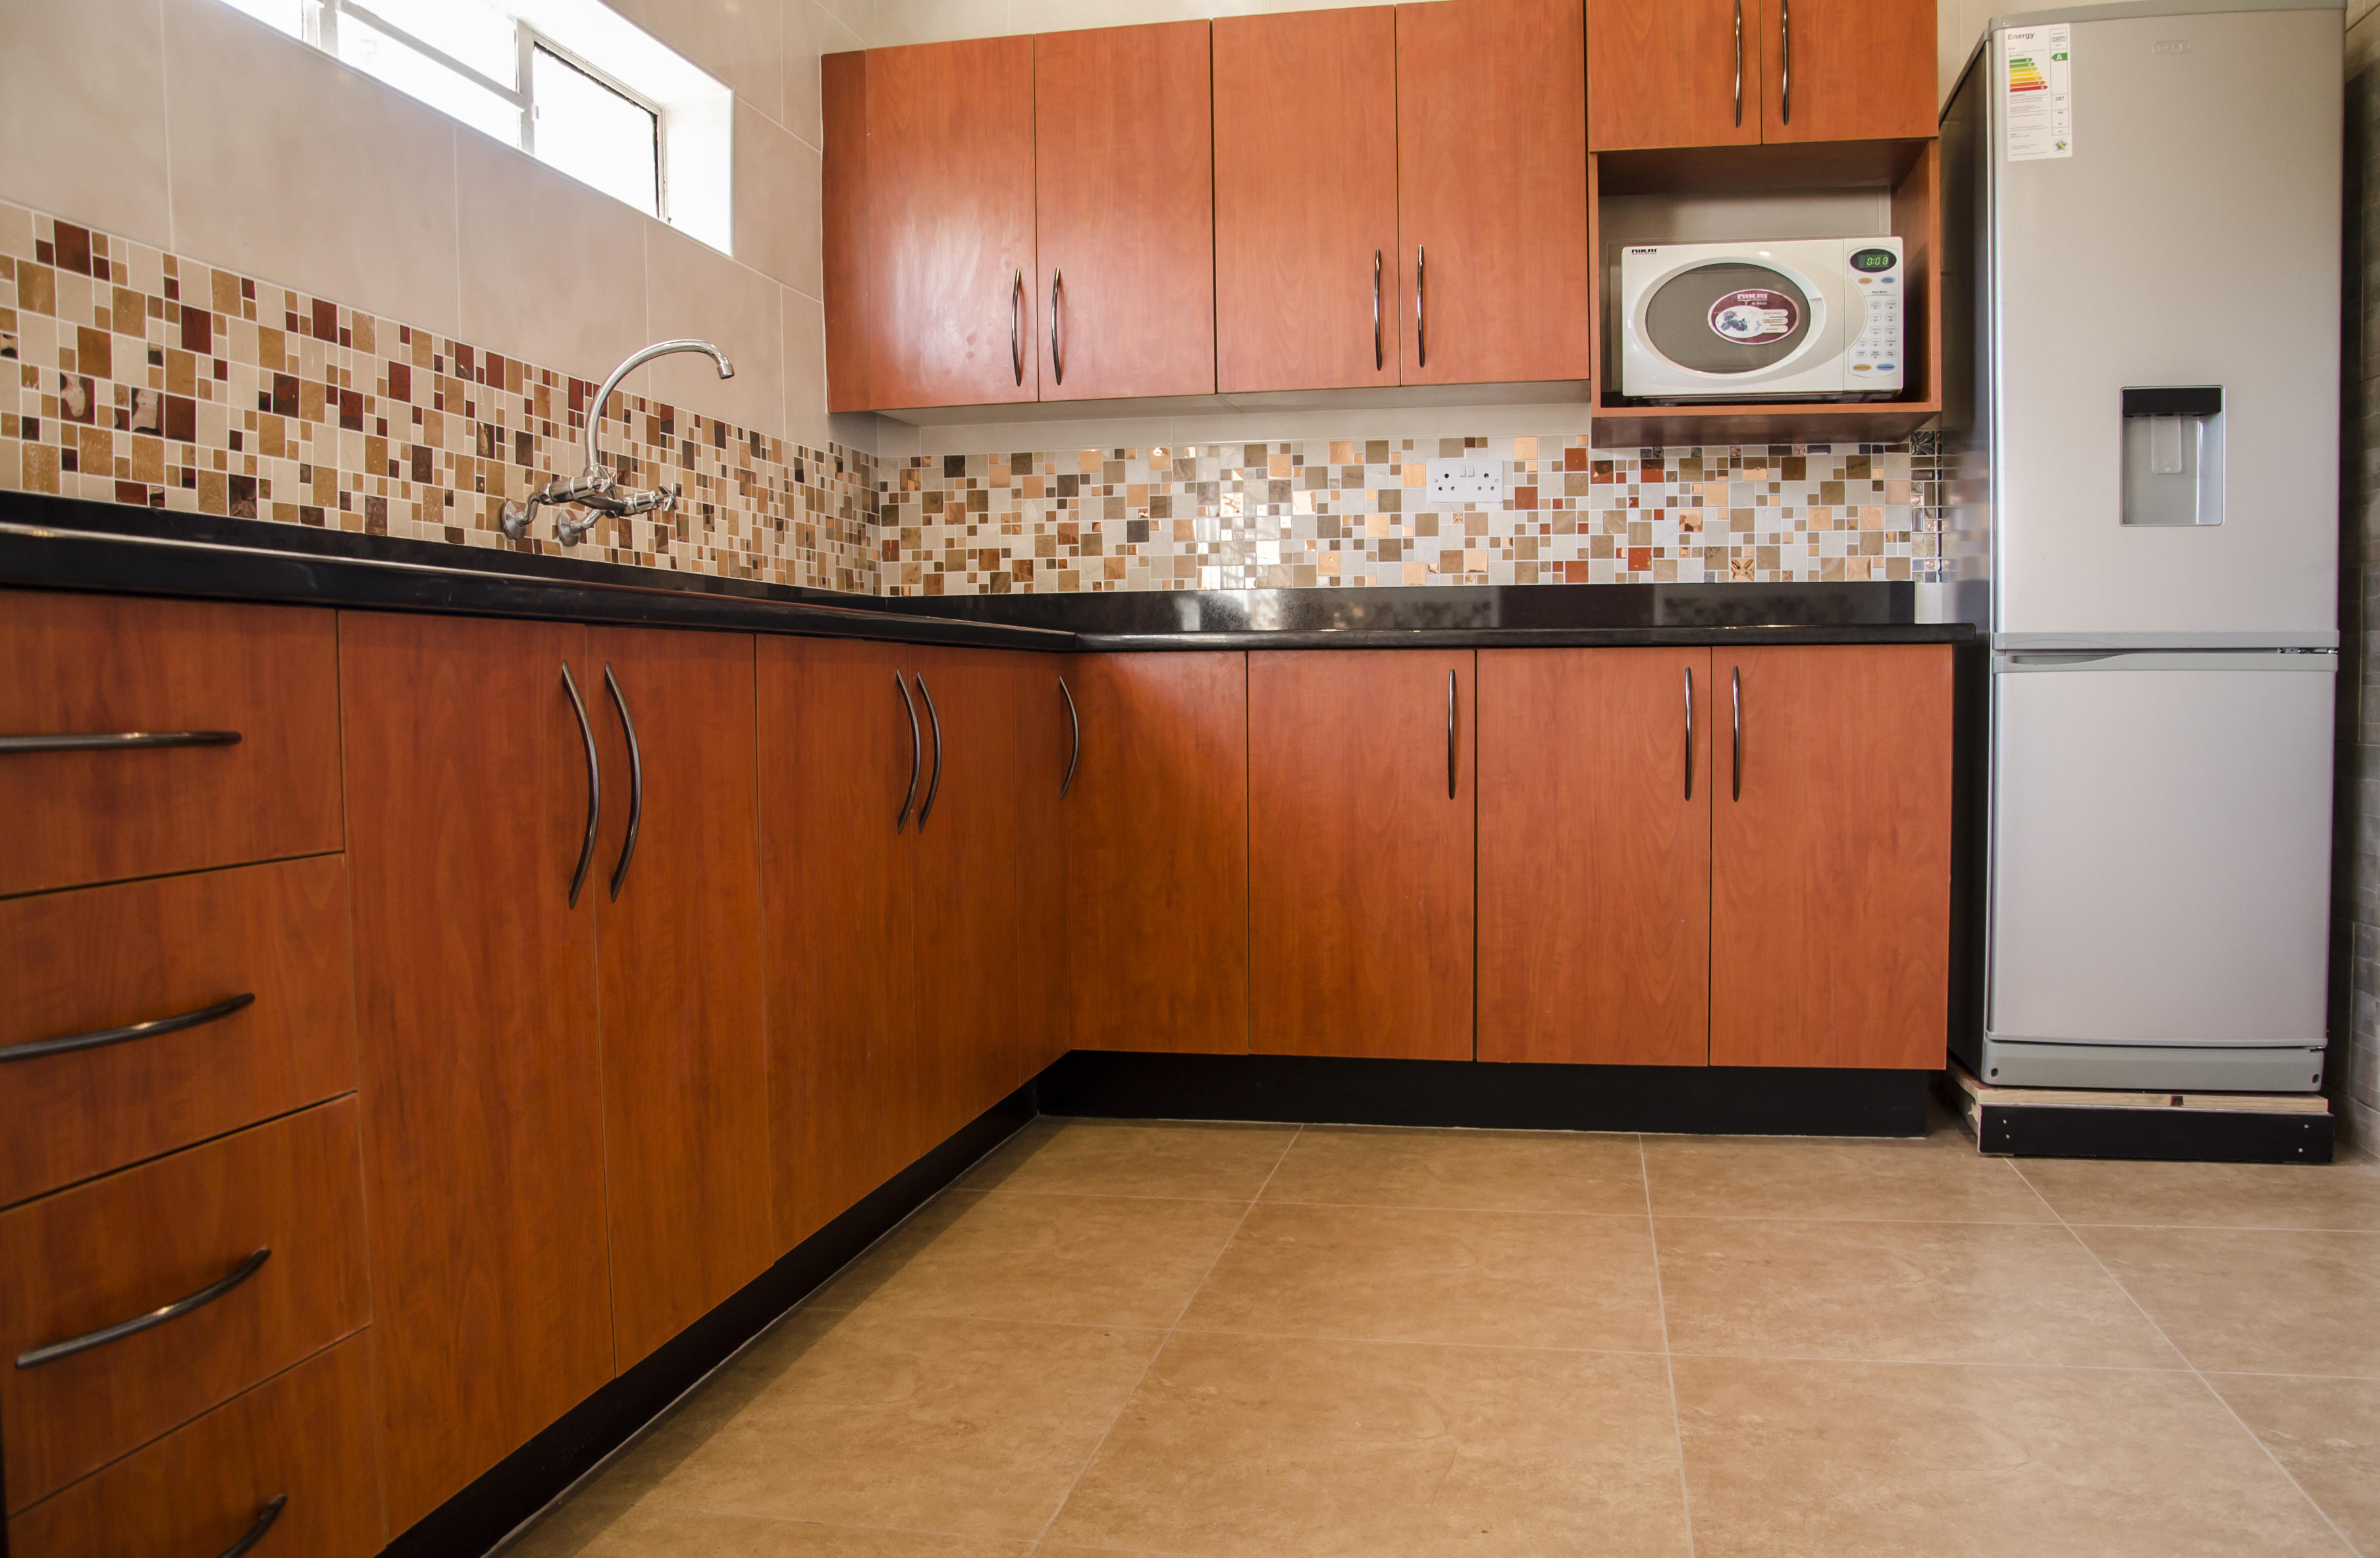 Cherry royal melamine kitchen with double sink and wall mounted microwave with free standing fridge